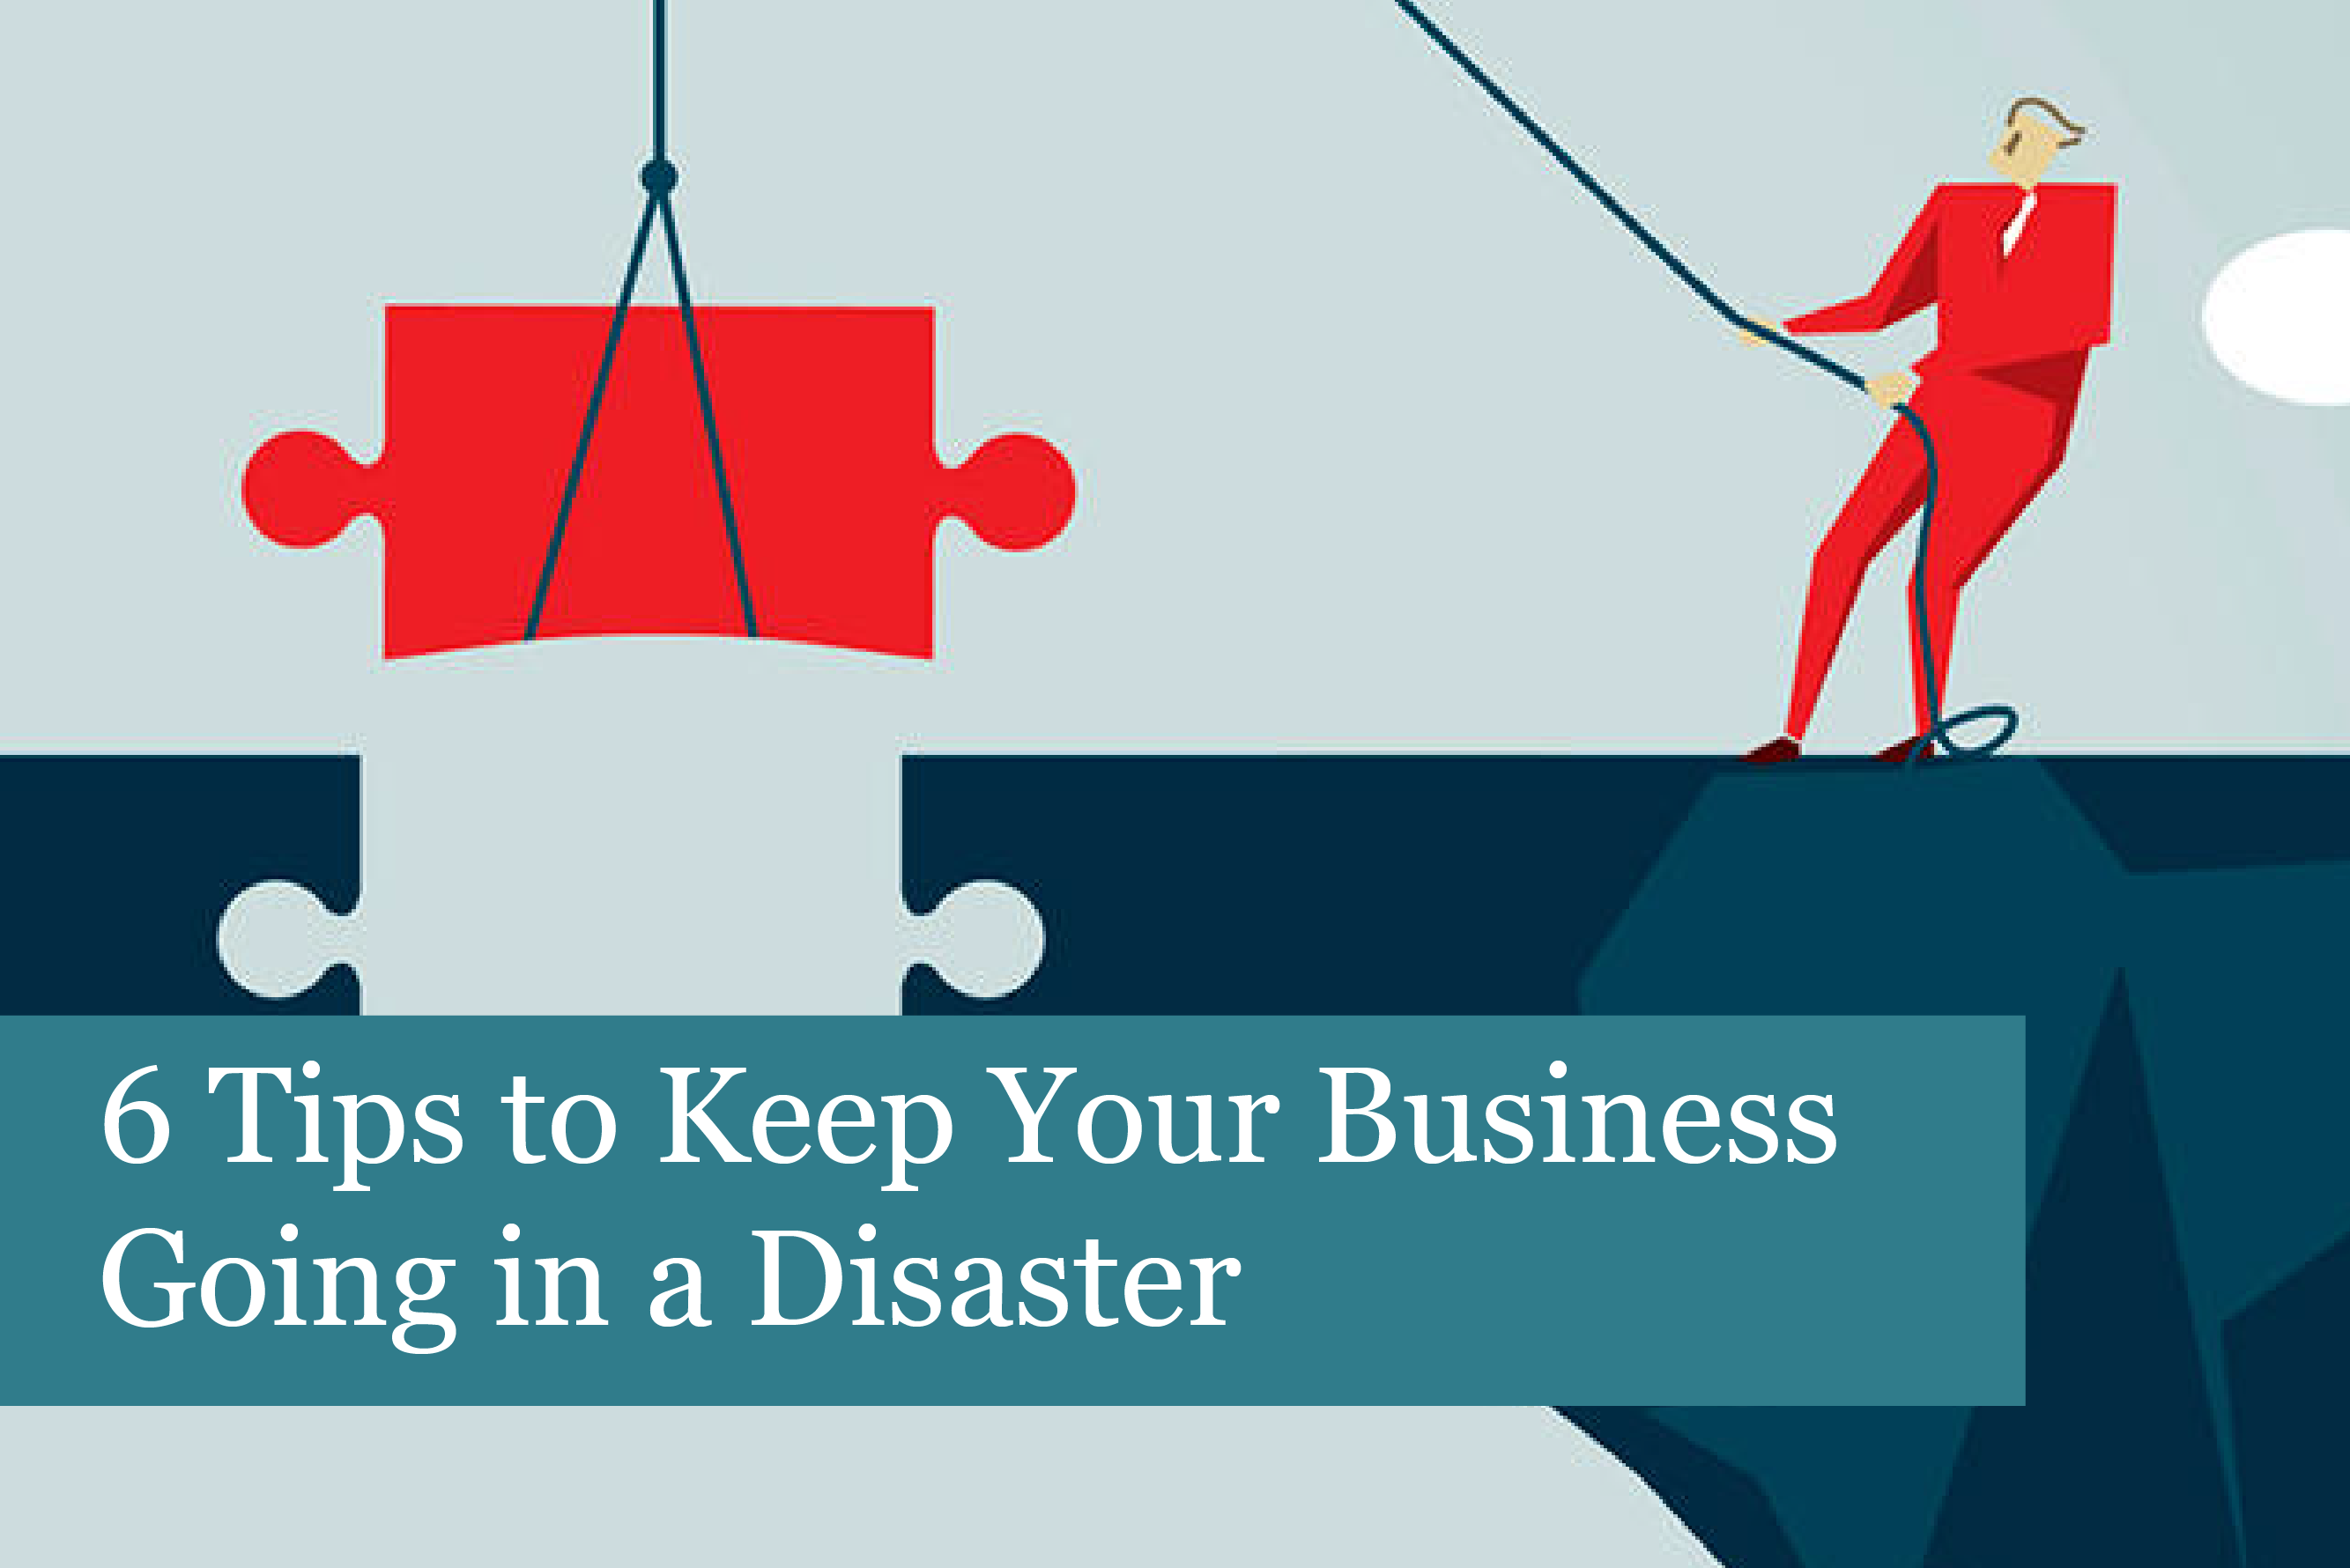 6 Tips to Keep Your Business Going in a Disaster